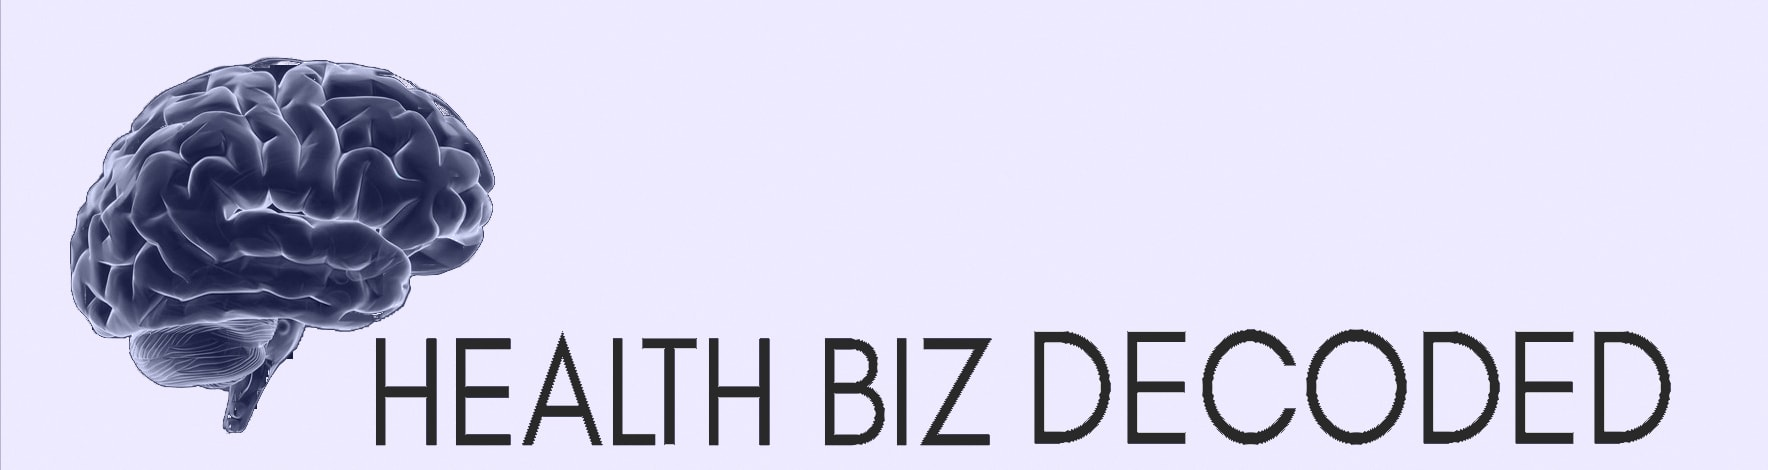 Health Biz Decoded Appoints Julie Ross as Operations Manager